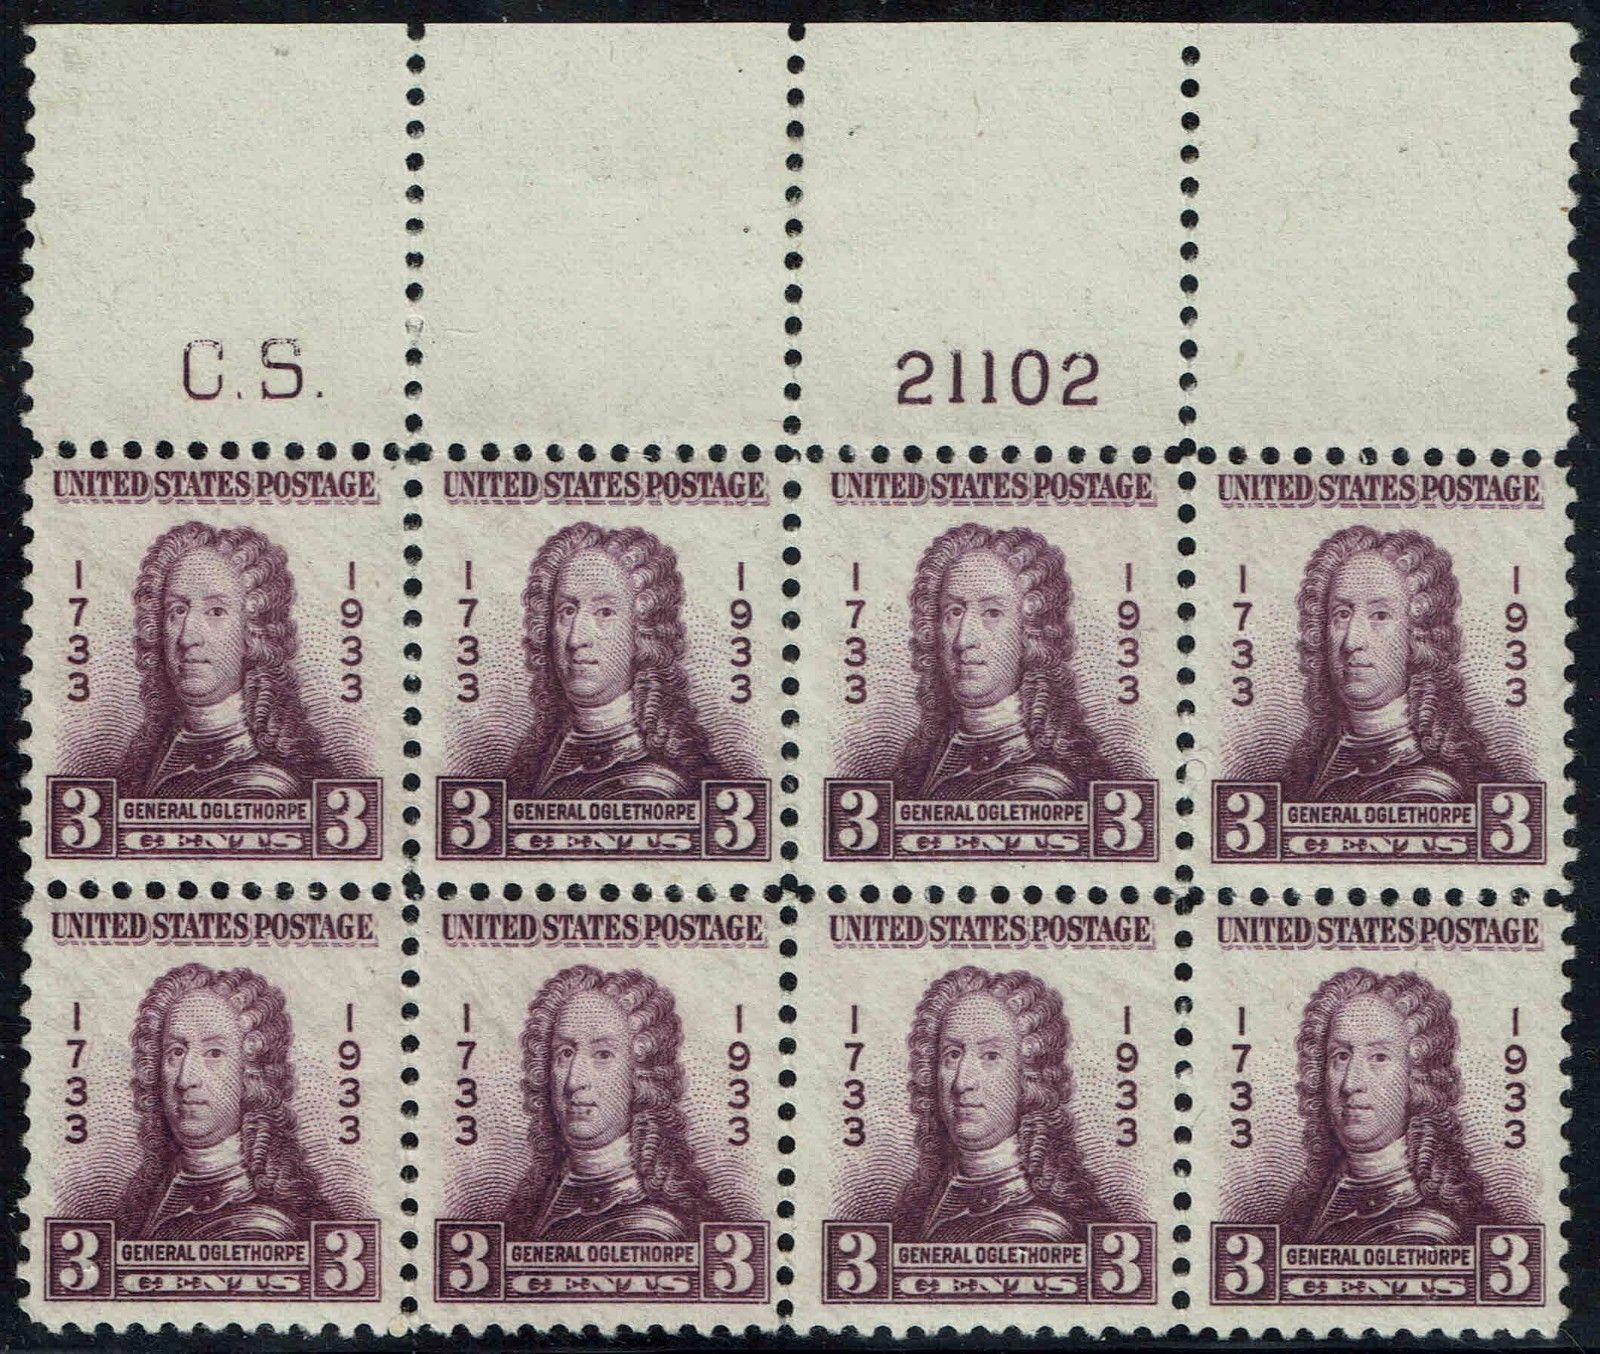 United States - Scott #726 (1933) - plate block of 6 from upper right pane, showing